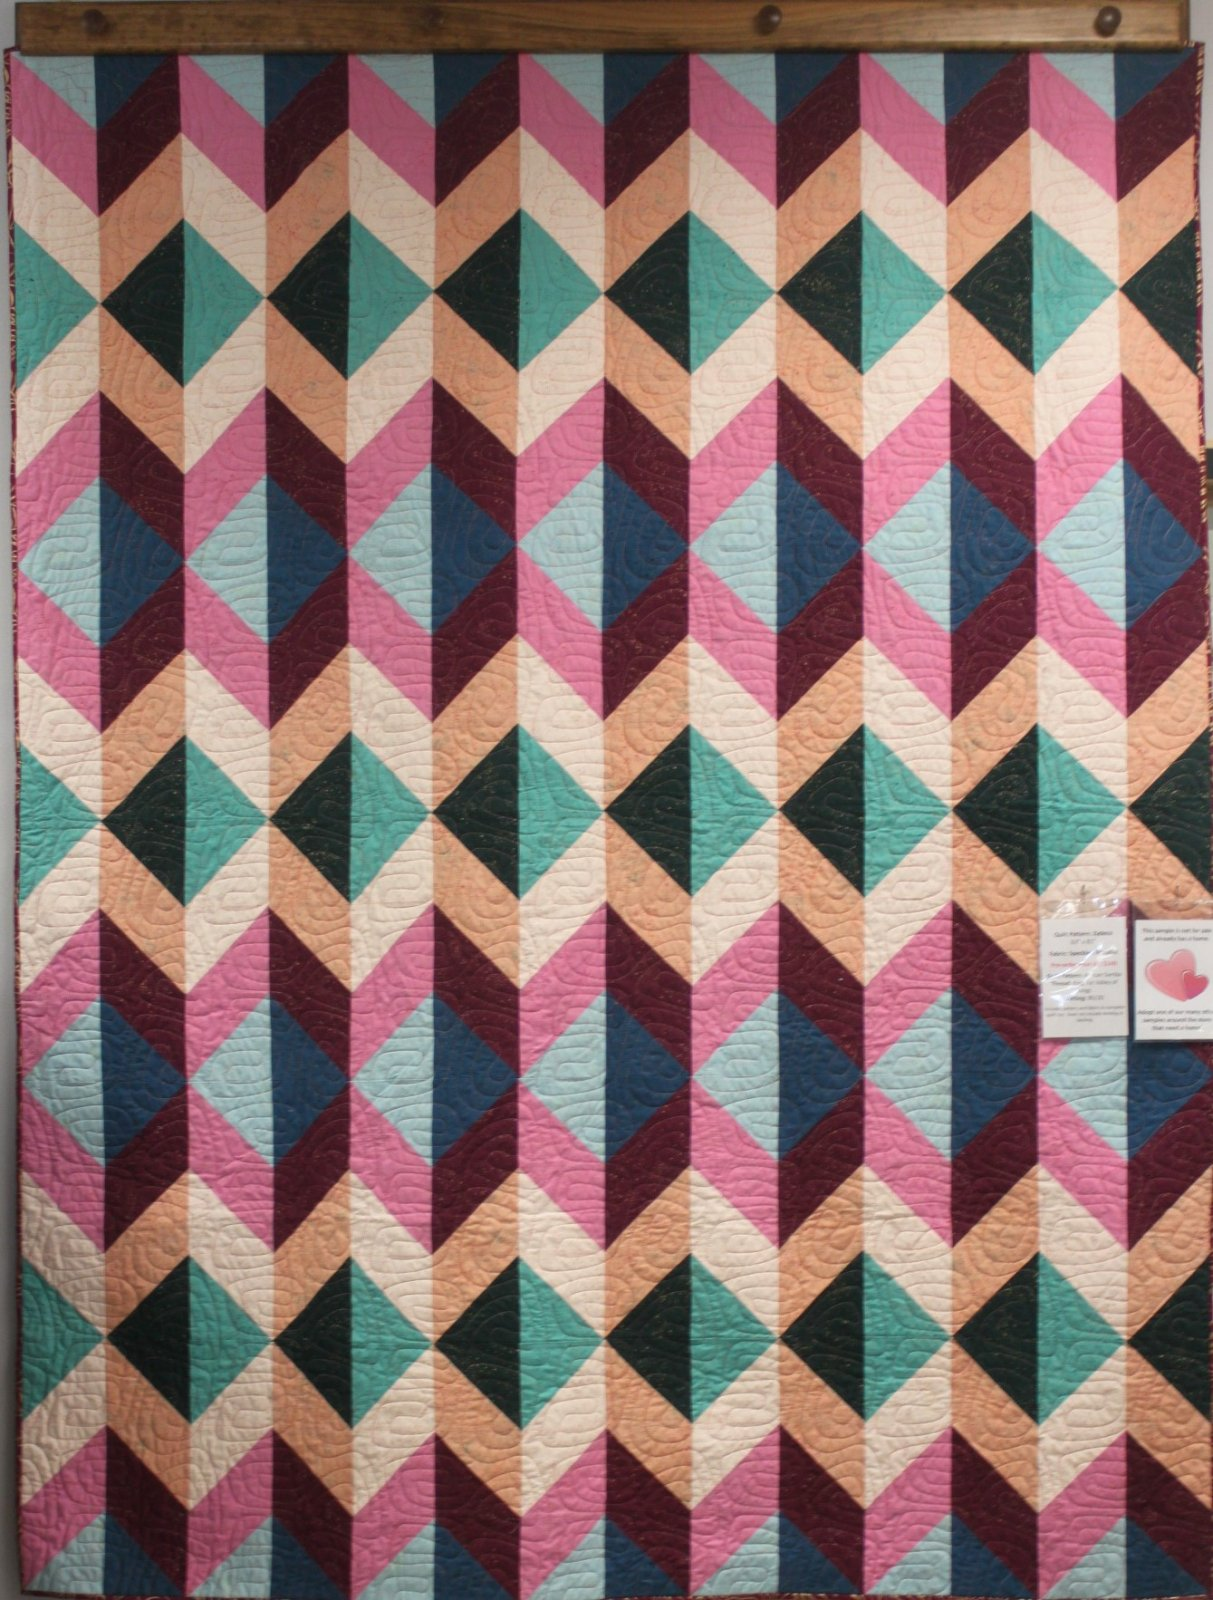 Zydeco Speckled Metallic Quilt Kit Preorder